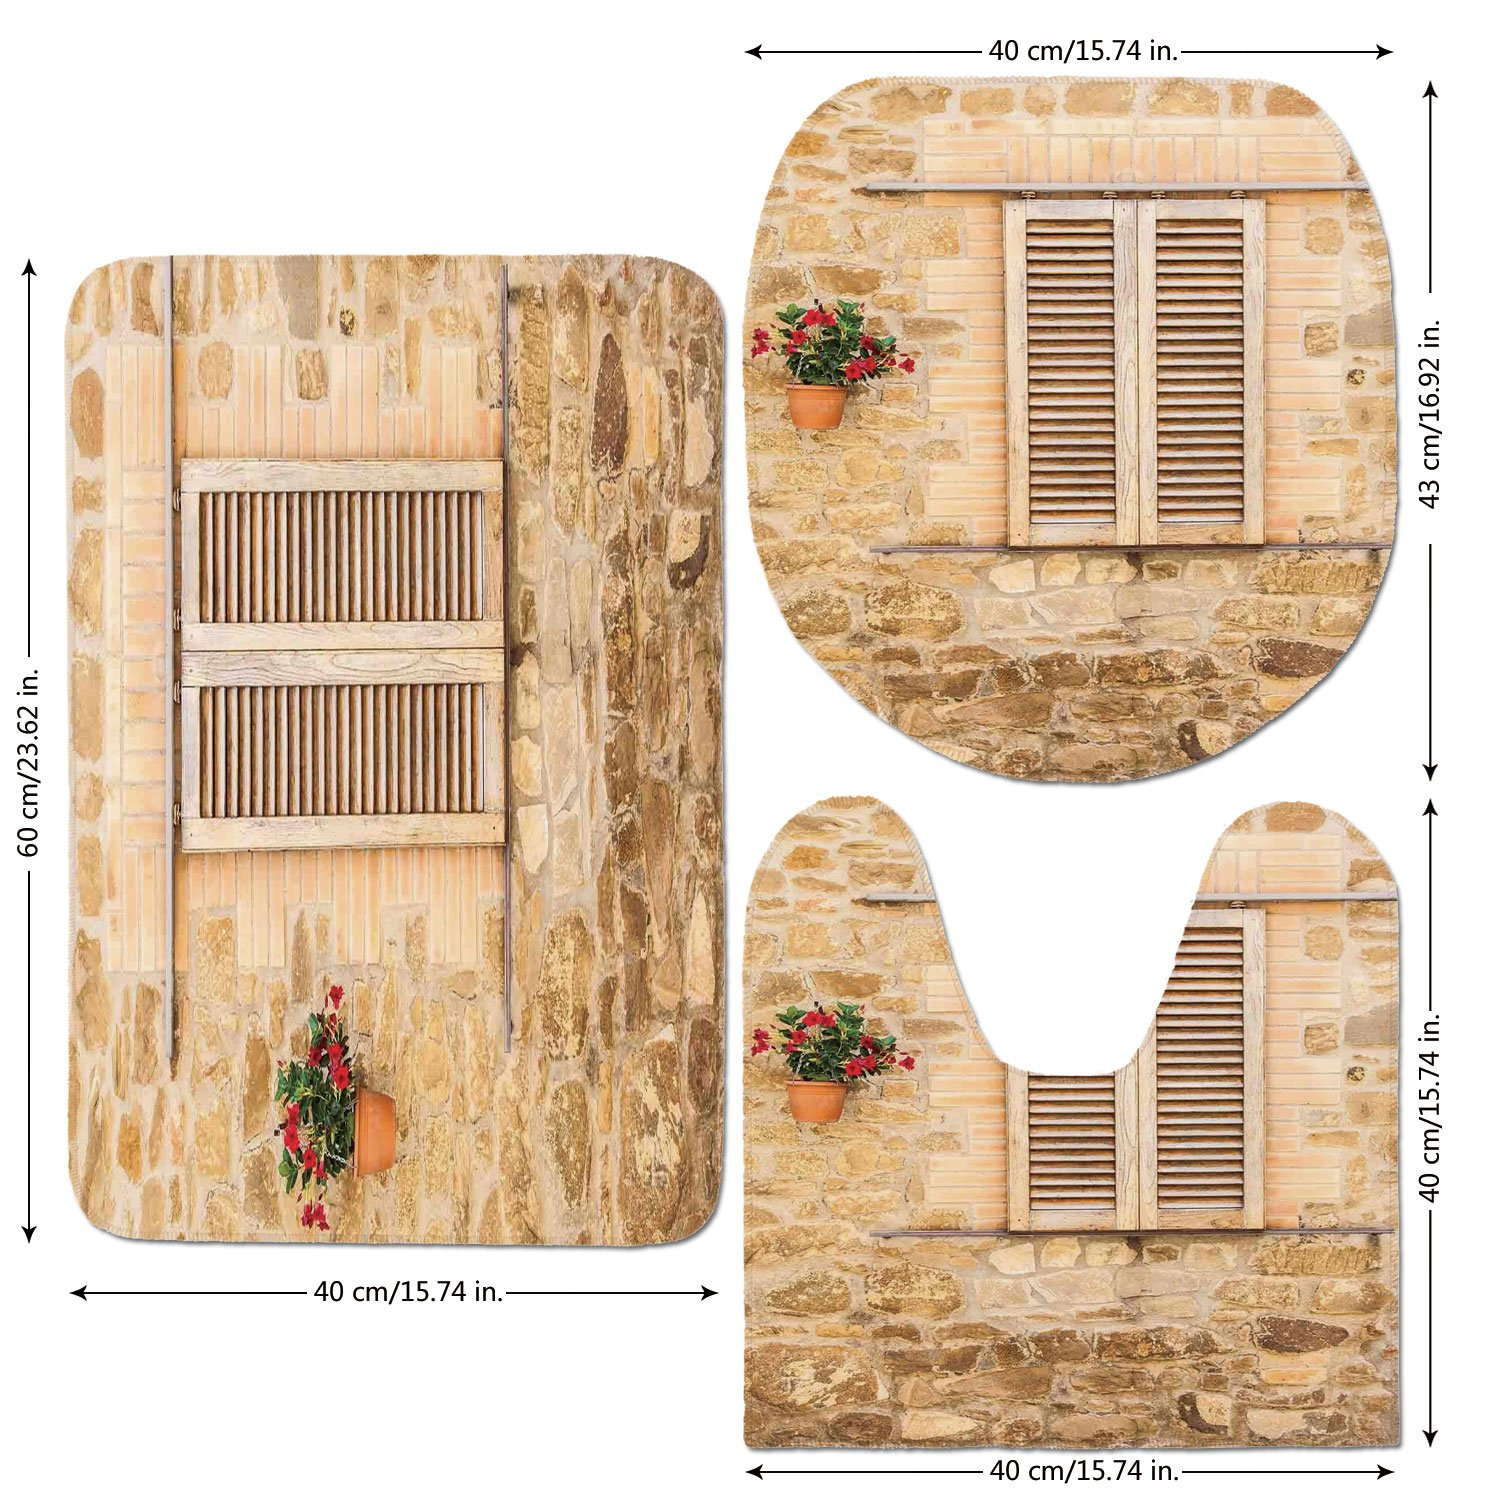 3 Piece Bathroom Mat Set,Tuscan,Rustic Stone House and Window Shutters Flower Pot on Wall Italian Country Home Theme,Beige,Bath Mat,Bathroom Carpet Rug,Non-Slip